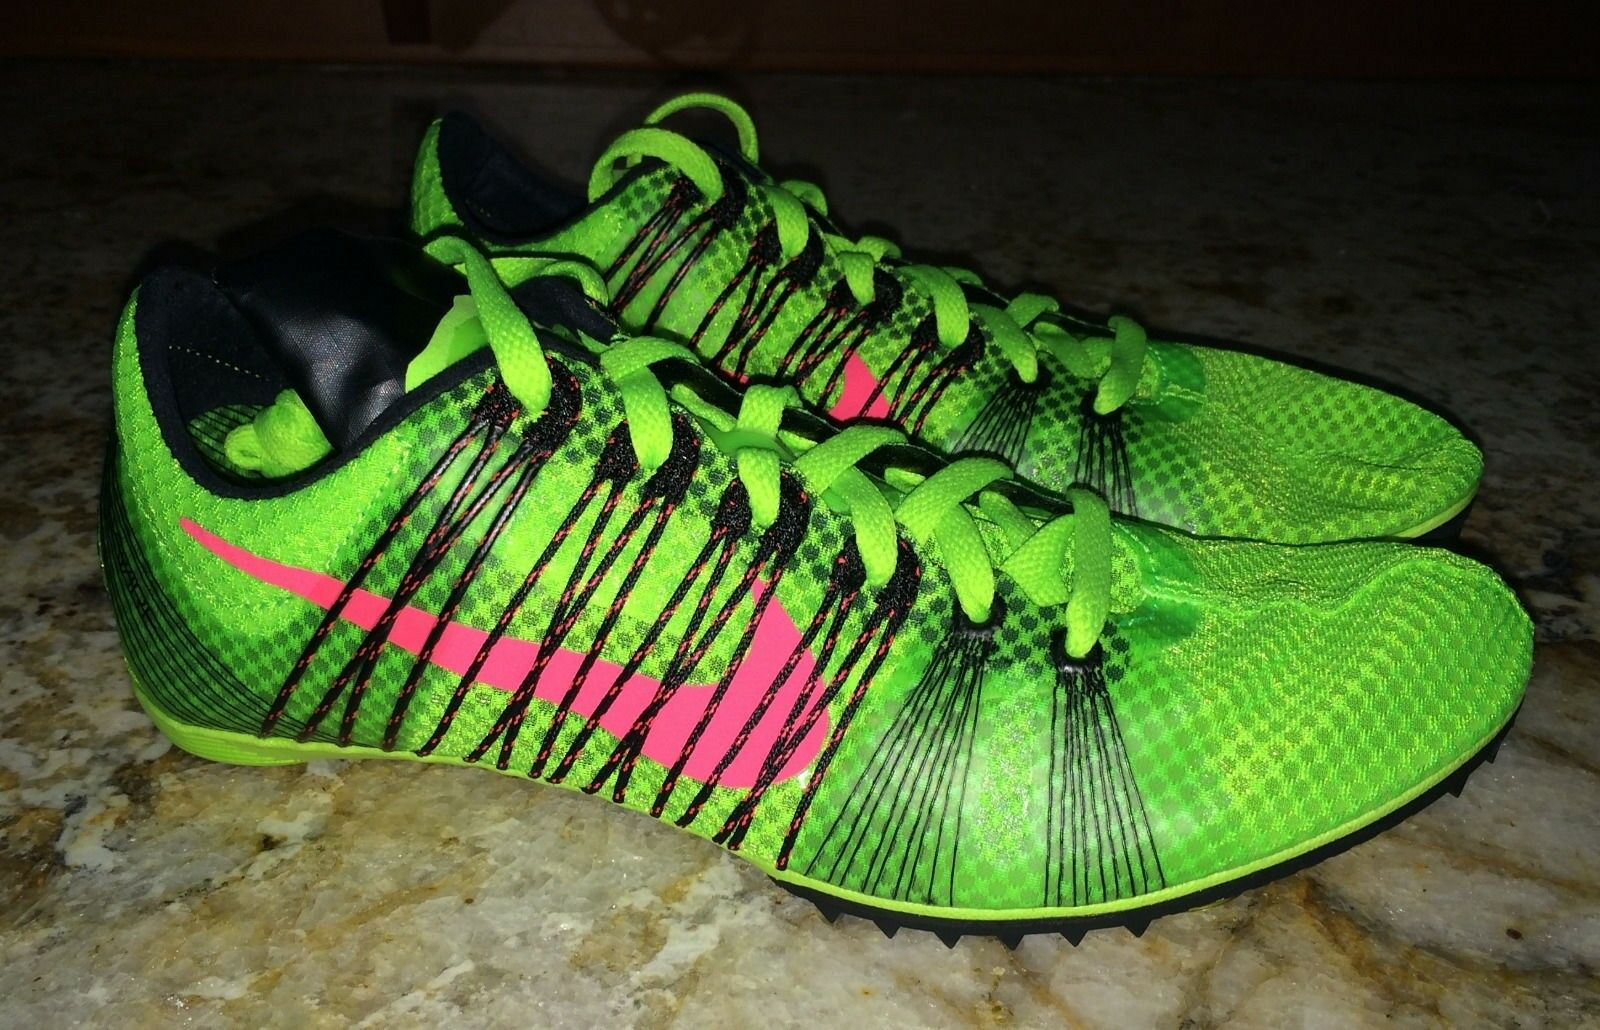 NIKE Victory 2 Lime Green Mid Distance Track Spikes Shoes 5.5 6.5 9.5 10.5 12.5